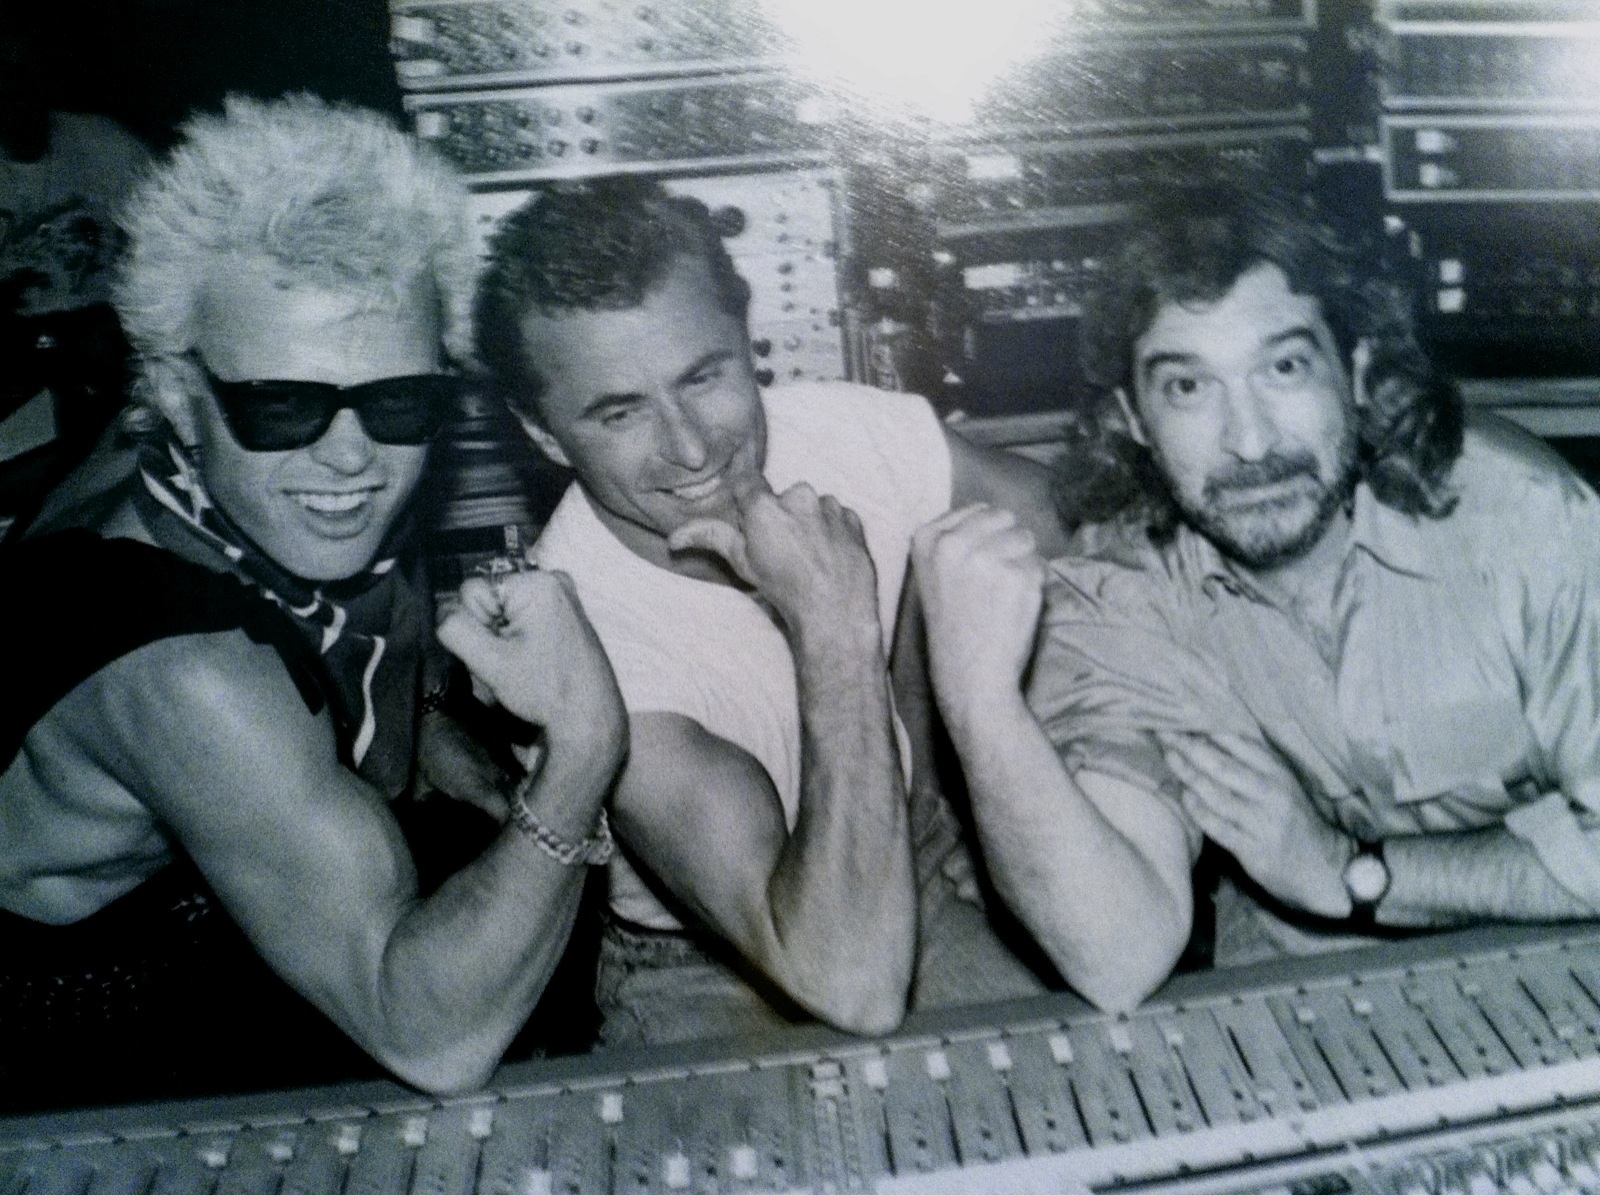 Billy Idol & Keith Forsey